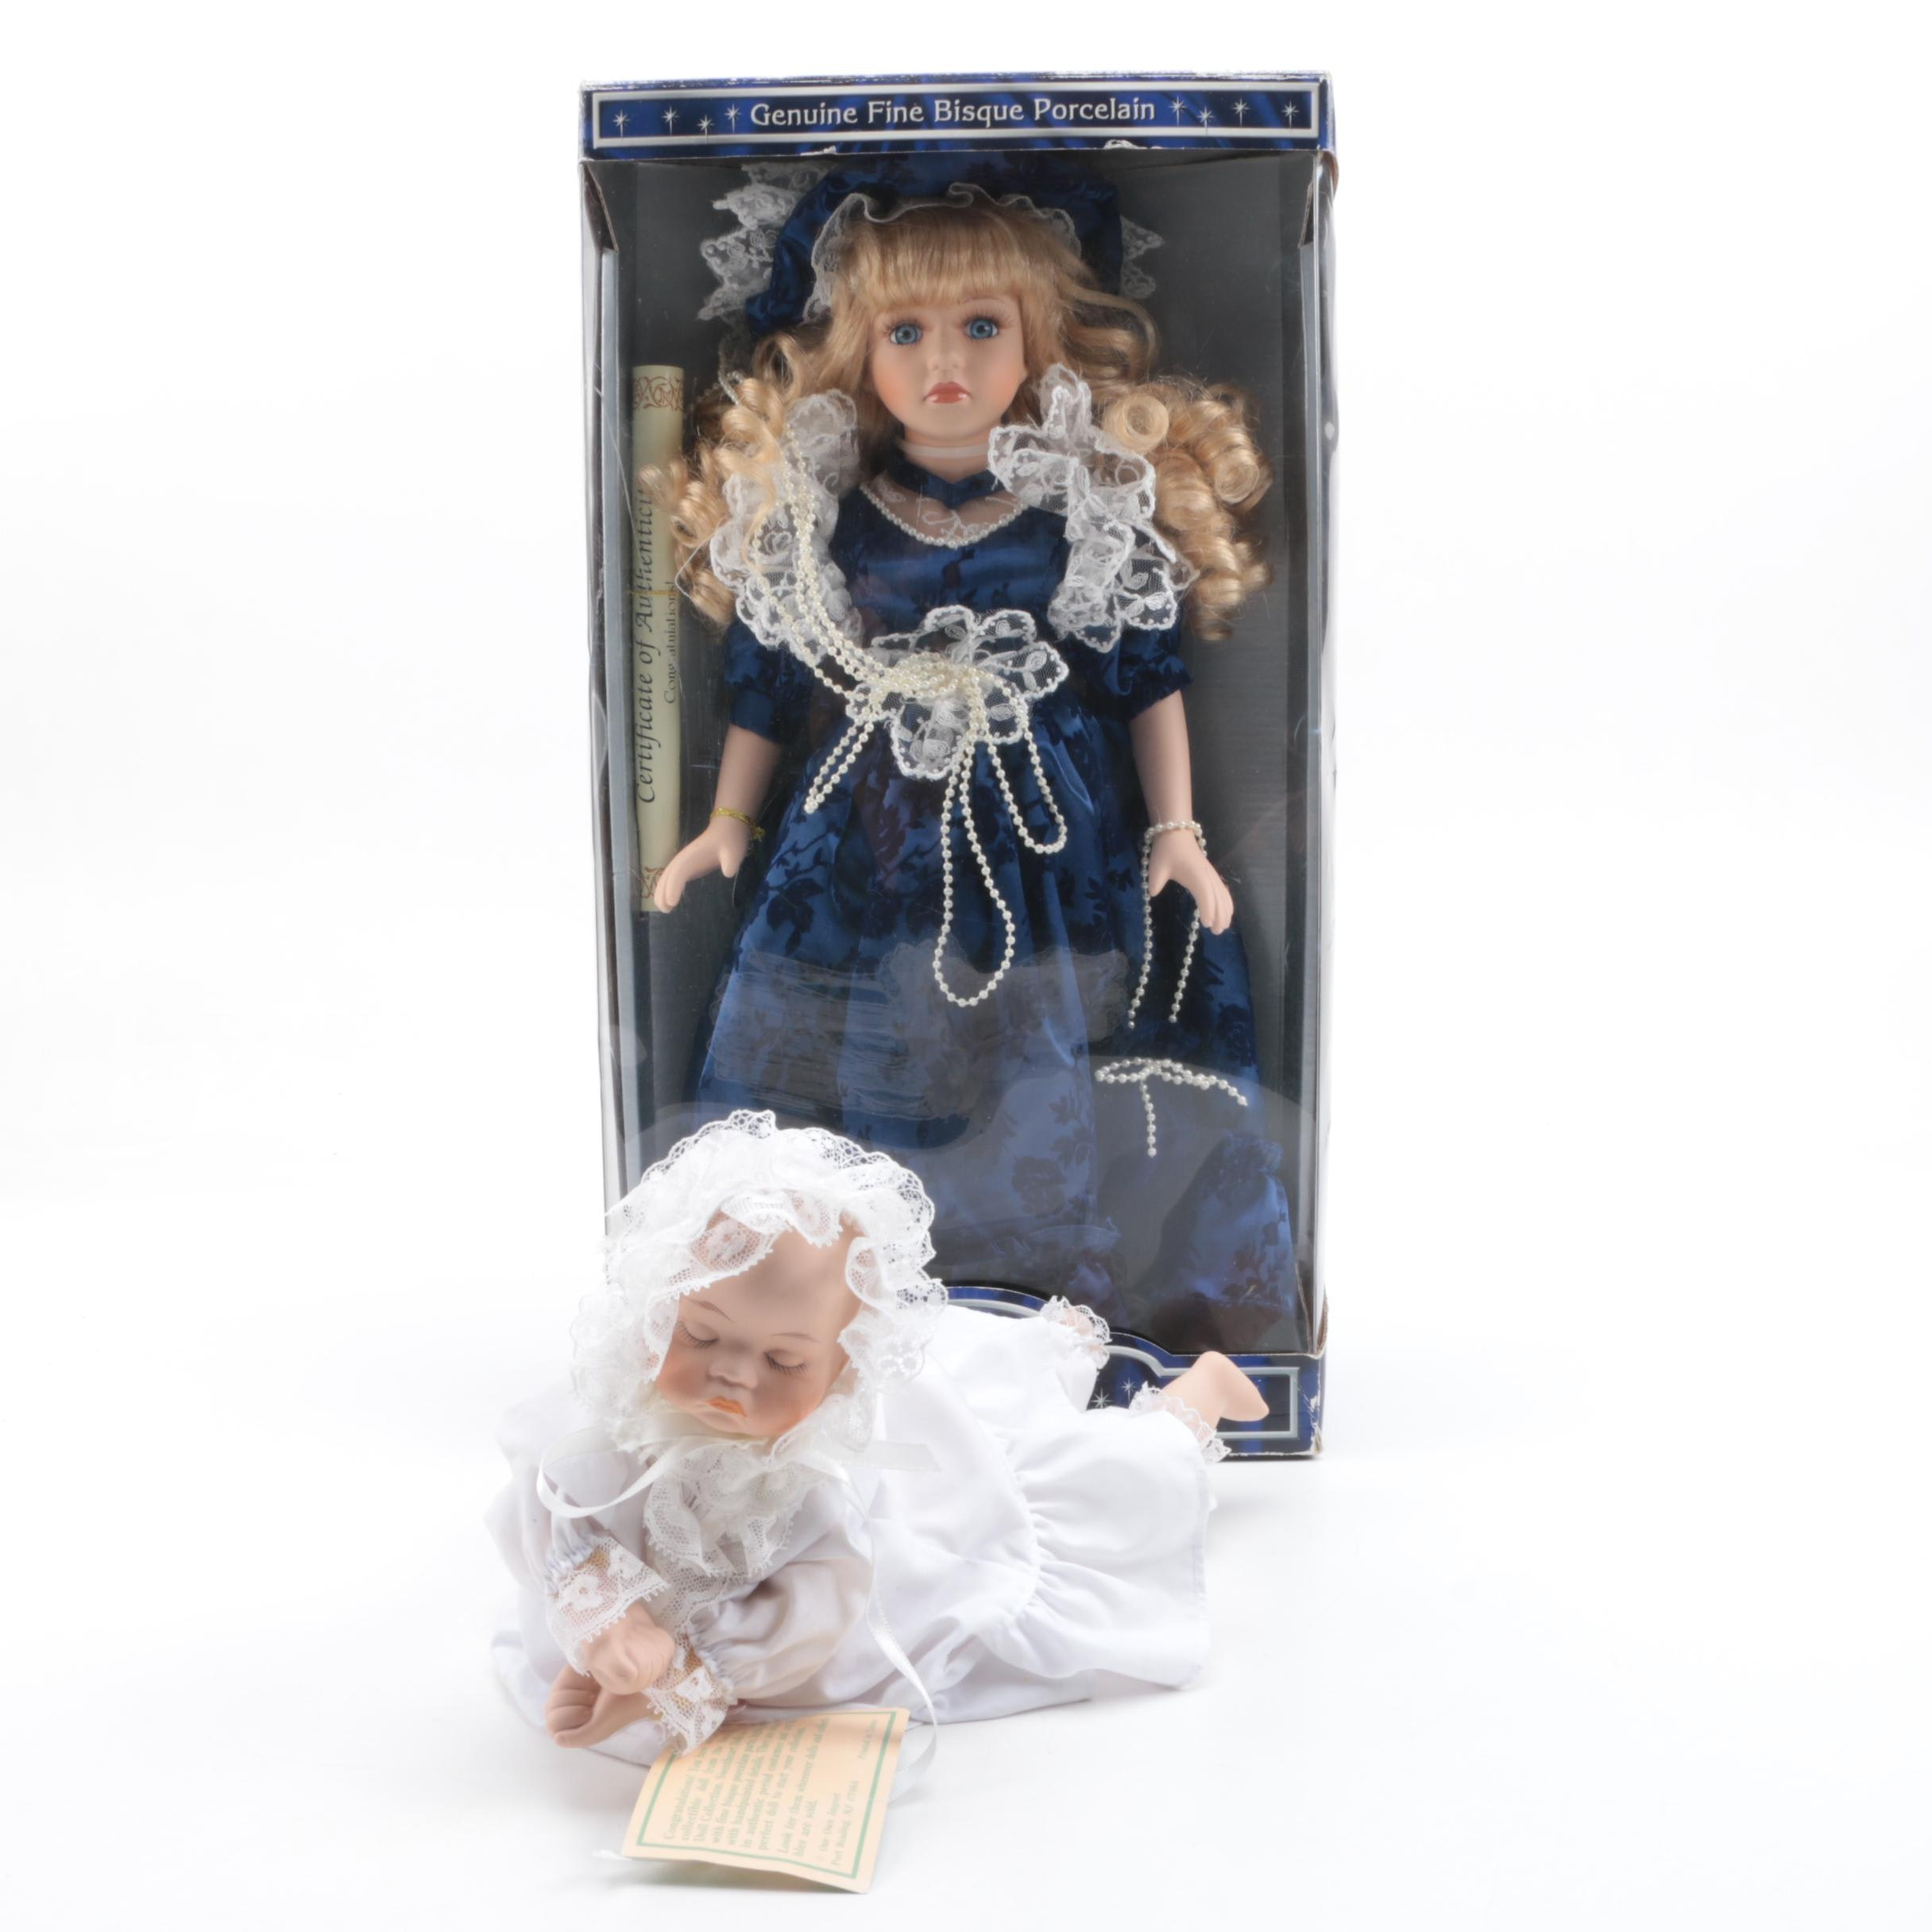 Collector's Choice and Musical Sweetheart Bisque Dolls